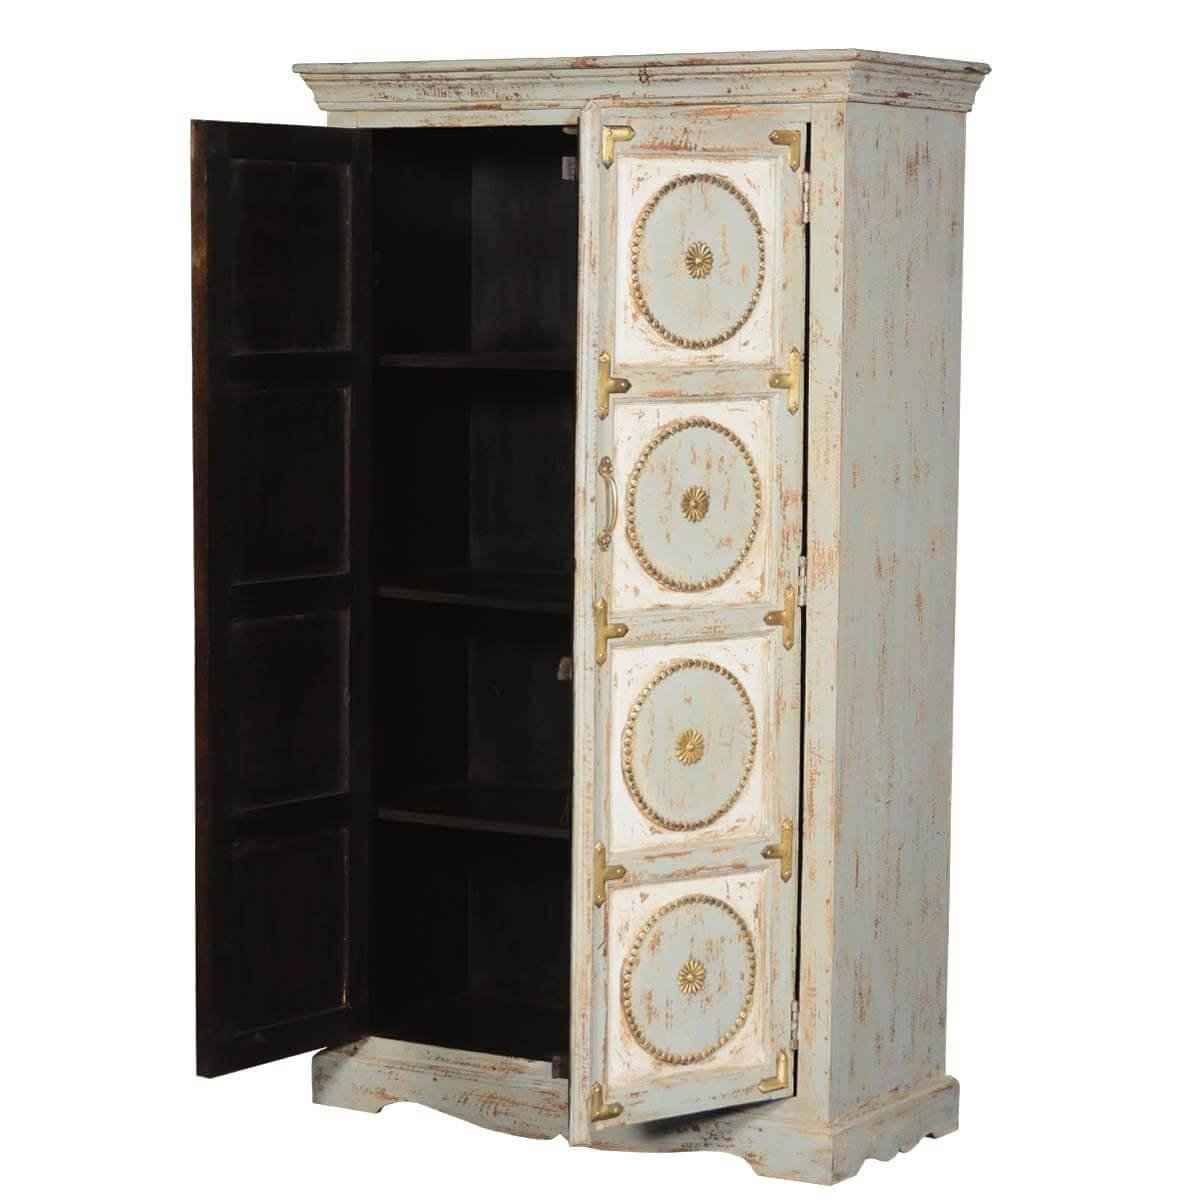 Best Rustic Solid Wood French Quarter Bedroom Armoire Storage With Pictures